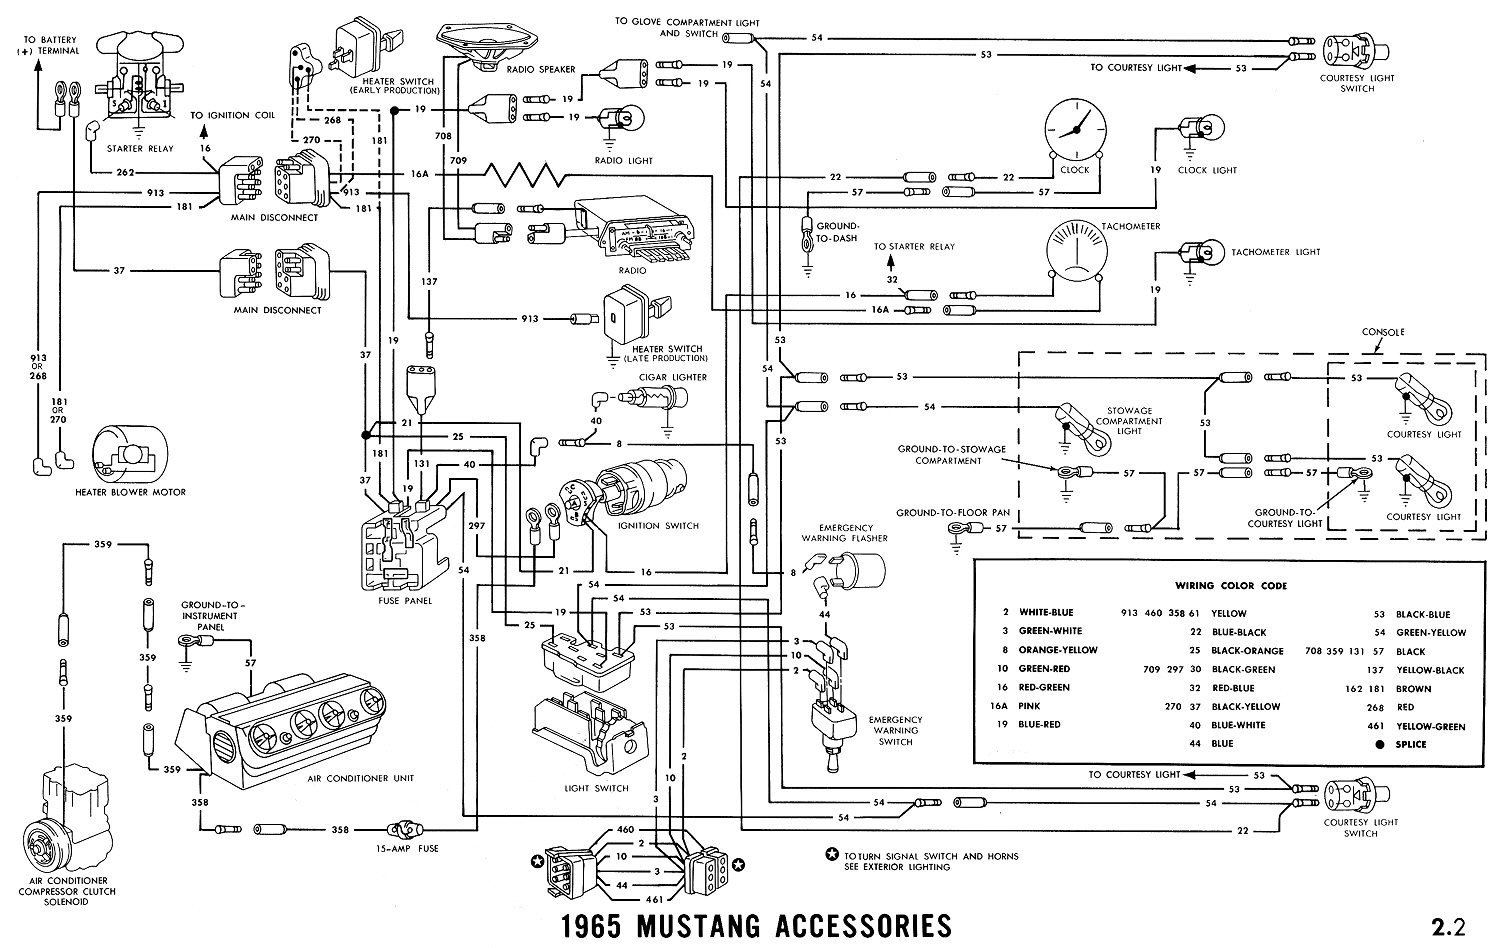 1965i 1965 mustang wiring diagram 1965 lincoln wiring diagram \u2022 wiring 2005 ford mustang instrument cluster wiring diagram at readyjetset.co